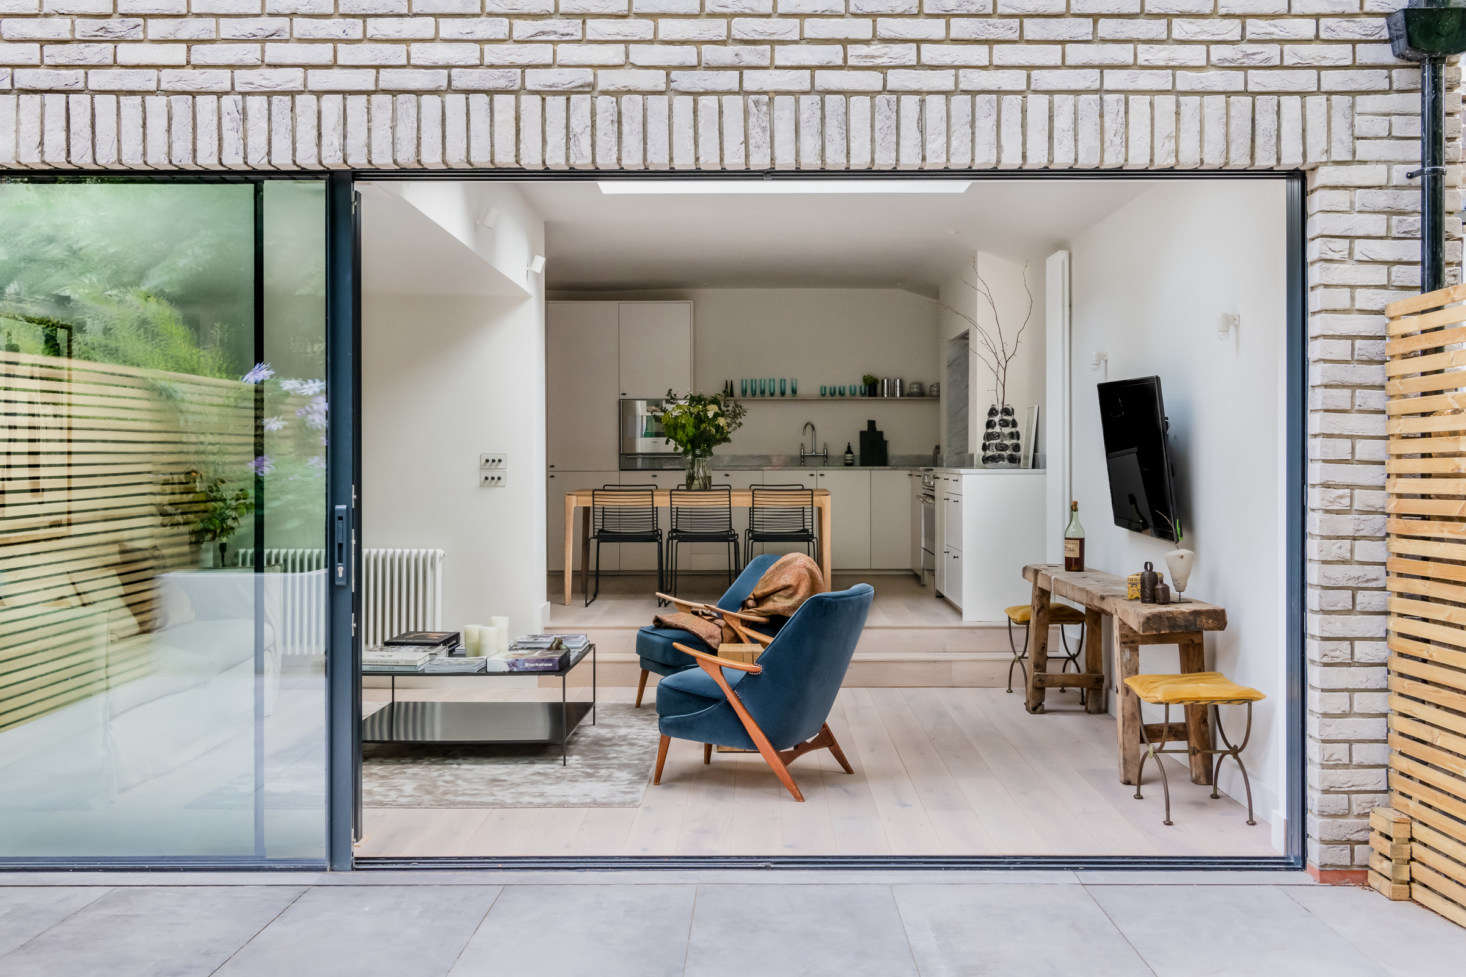 """""""Luckily for me, she gave me free rein to design the house,"""" says Olivia of her sister, a lawyer. """"She trusted me to source and design my own pieces. She loves the flat, and I think I've opened her eyes to being braver and more eclectic in her design style."""""""